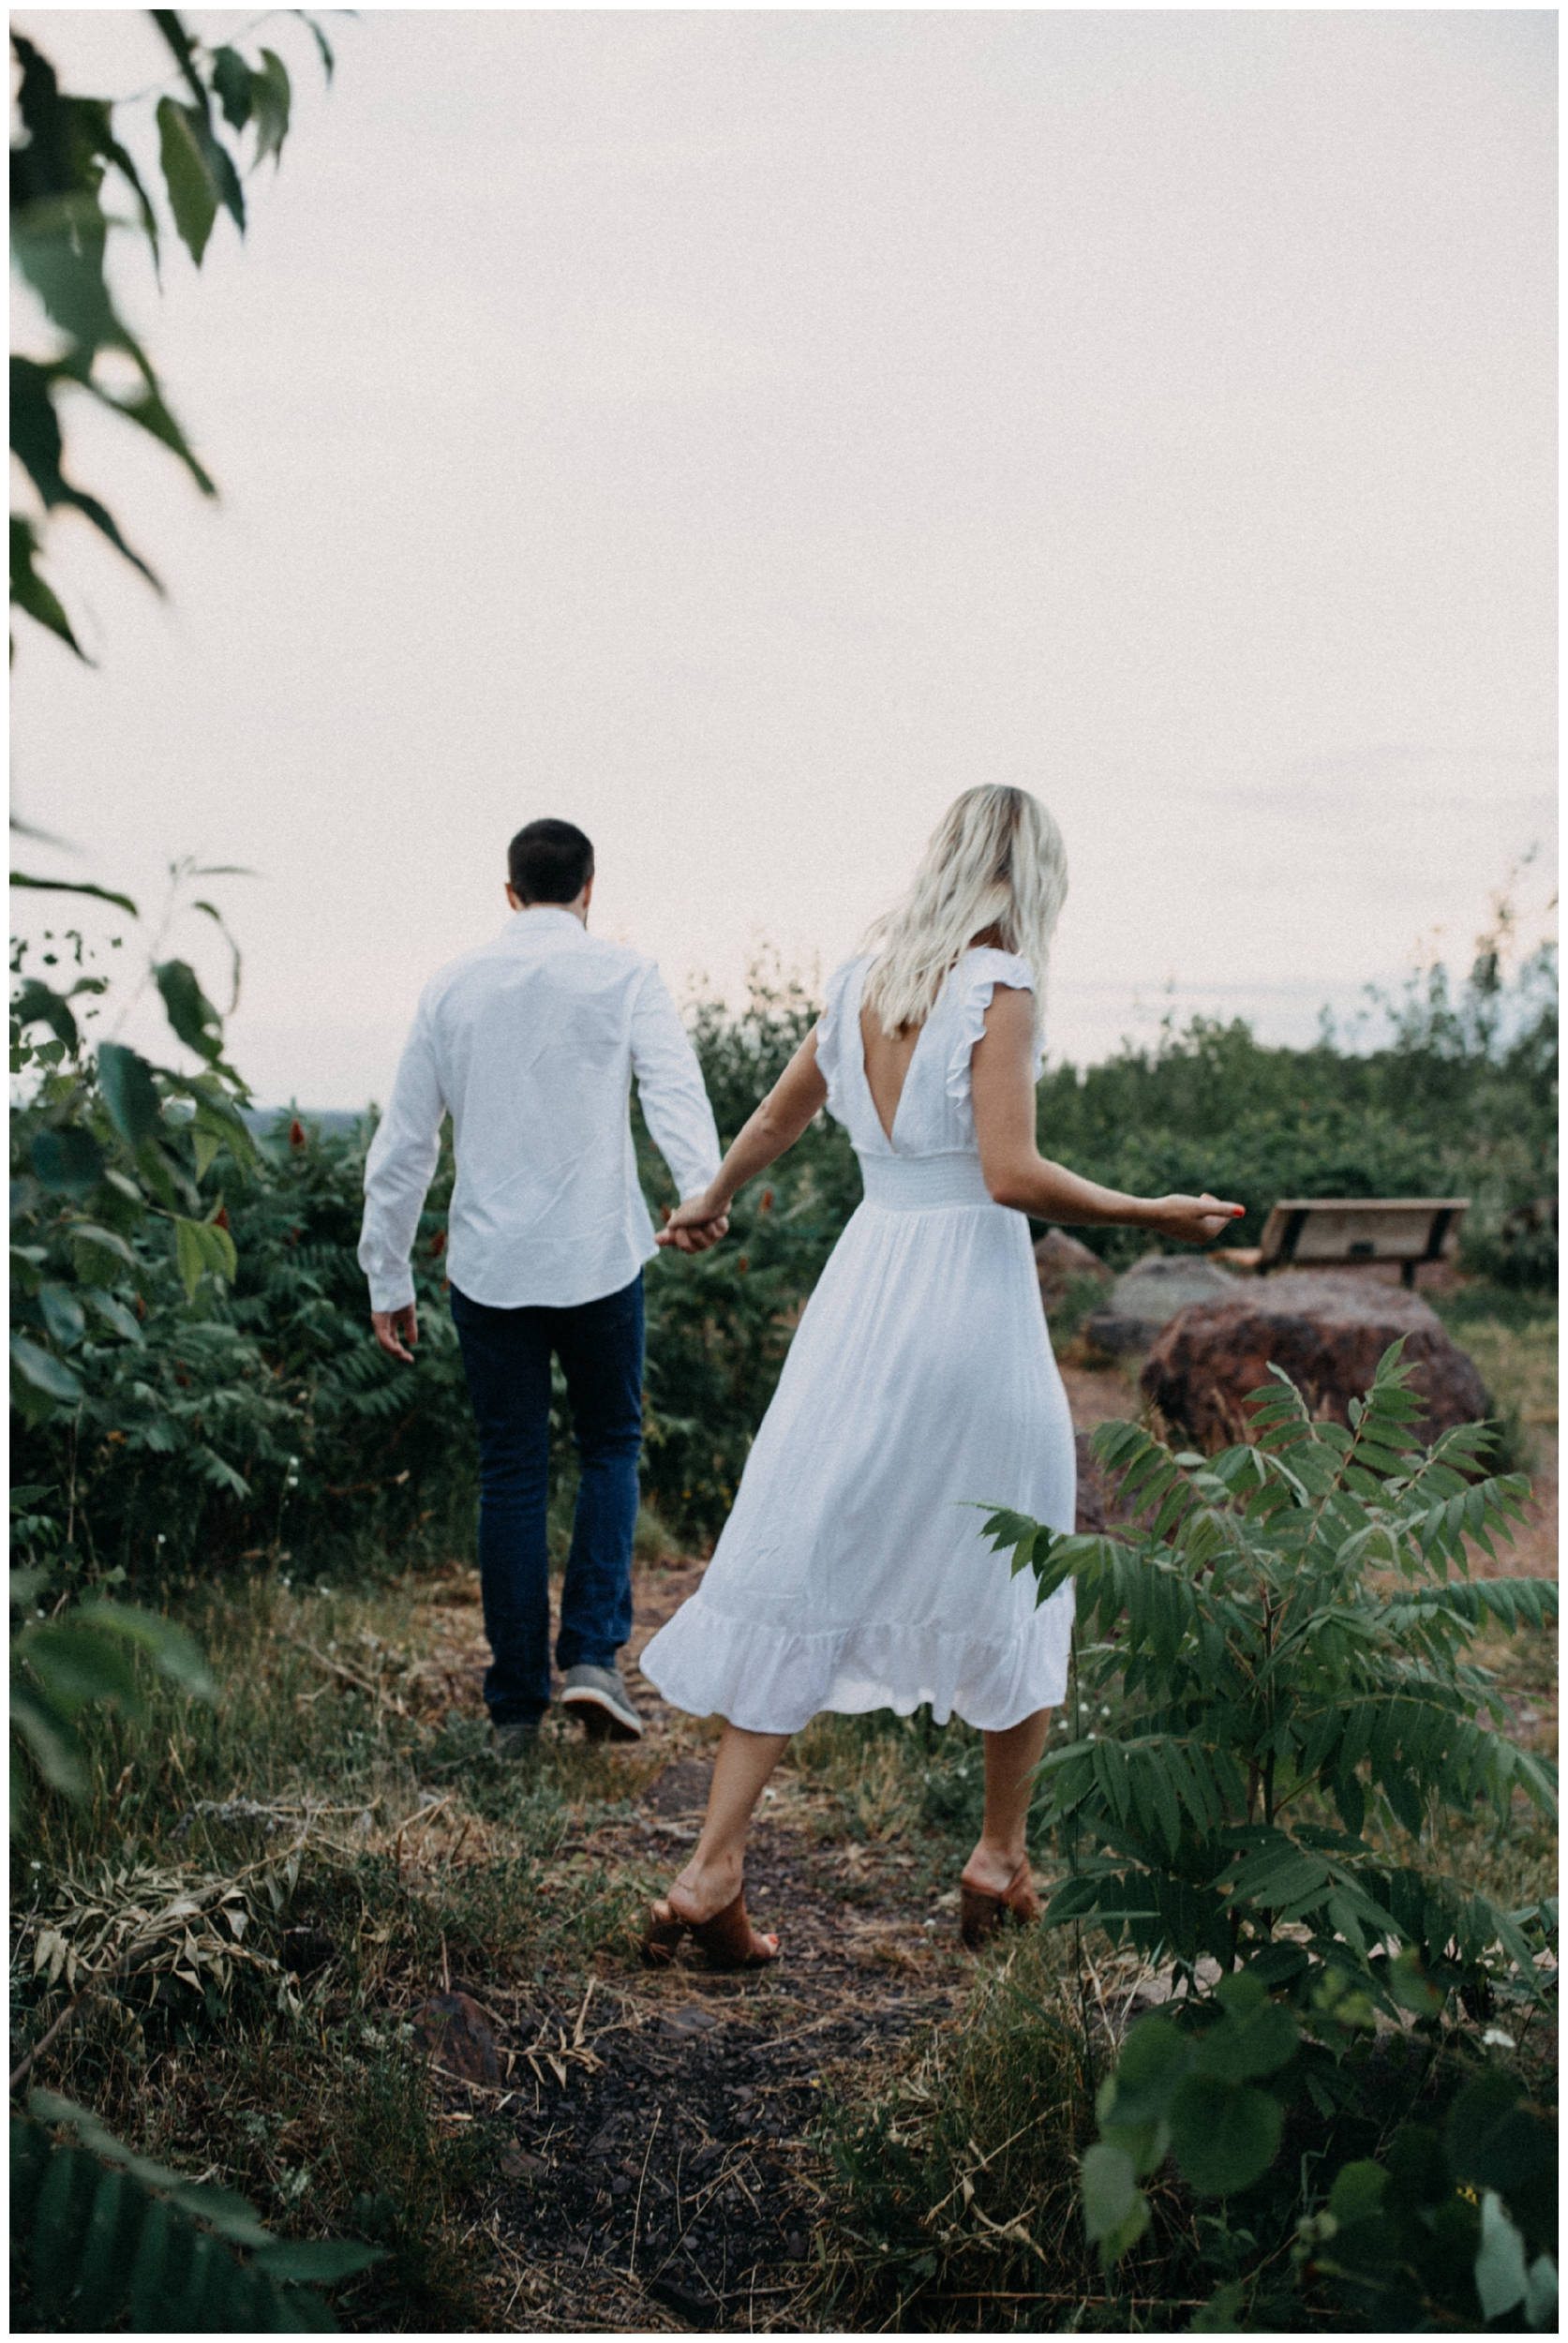 Miner's Mountain engagement session by Britt DeZeeuw